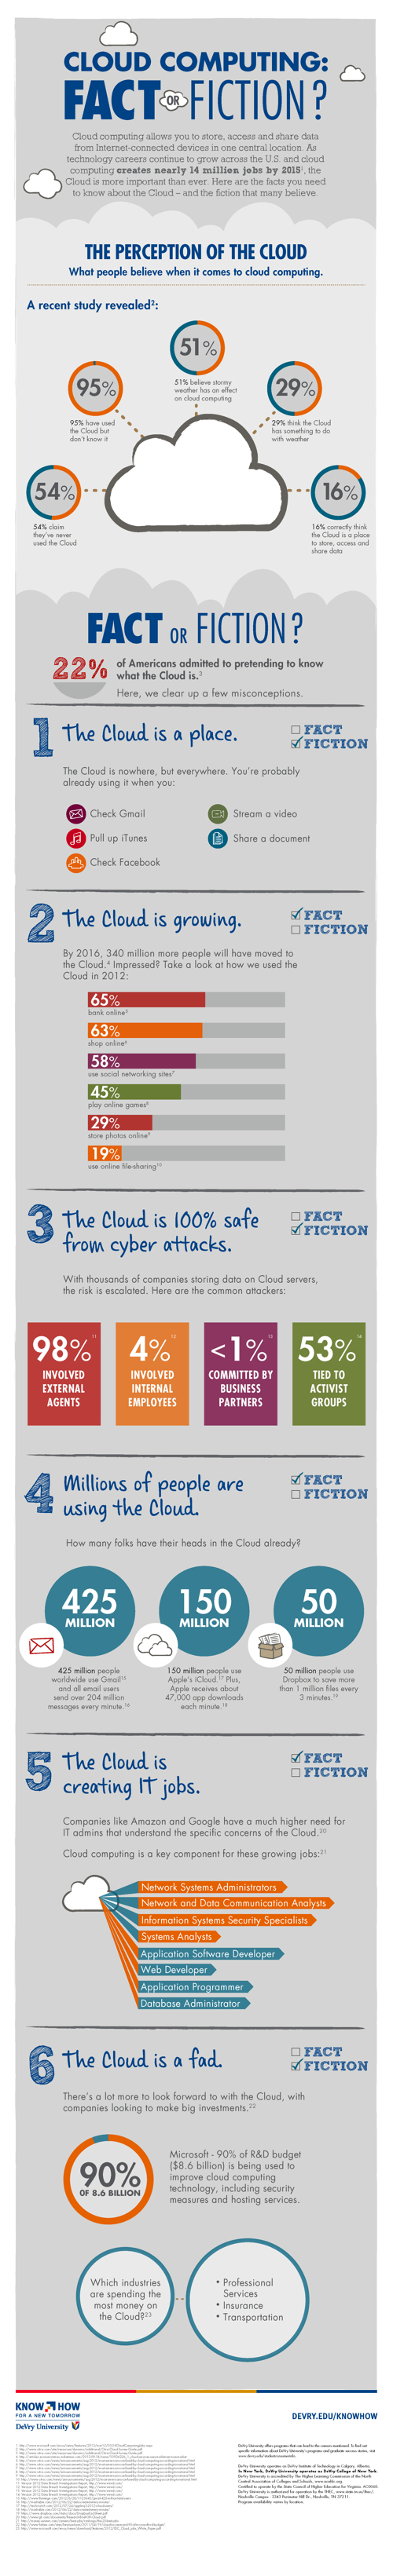 Cloud-Computing-Fact-Or-Fiction.jpg